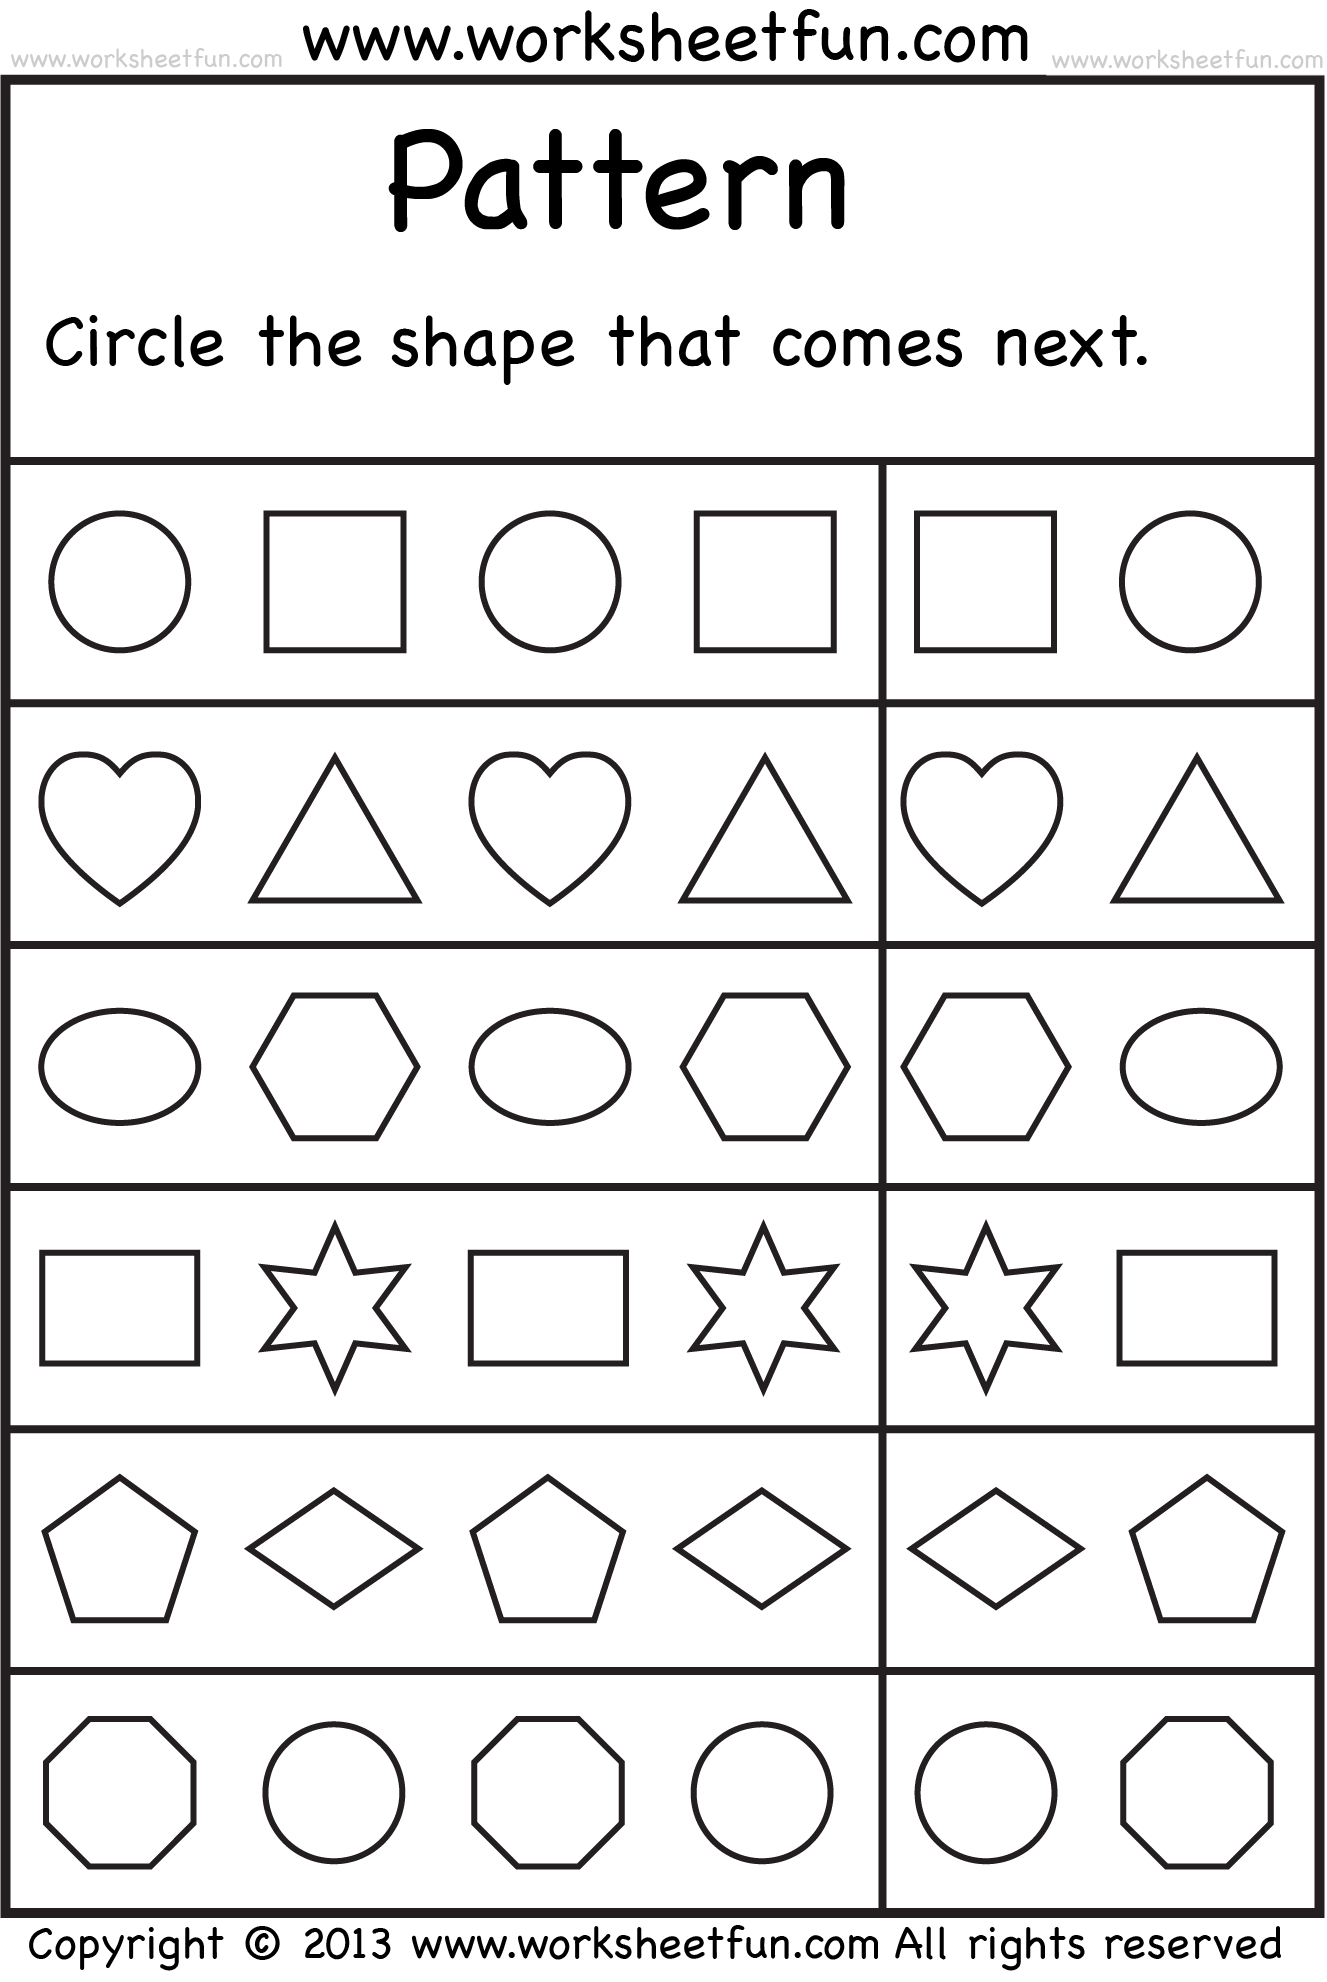 Weirdmailus  Personable  Images About School Worksheets On Pinterest  Number Words  With Engaging  Images About School Worksheets On Pinterest  Number Words Alphabet Worksheets And Free Printable Kindergarten Worksheets With Appealing The Circulatory System Worksheet Answers Also Beginning Algebra Worksheets In Addition Half Life Practice Worksheet And Color By Number Addition Worksheets As Well As Translating Algebraic Expressions Worksheet Additionally Dimensional Analysis Worksheet Answer Key From Pinterestcom With Weirdmailus  Engaging  Images About School Worksheets On Pinterest  Number Words  With Appealing  Images About School Worksheets On Pinterest  Number Words Alphabet Worksheets And Free Printable Kindergarten Worksheets And Personable The Circulatory System Worksheet Answers Also Beginning Algebra Worksheets In Addition Half Life Practice Worksheet From Pinterestcom